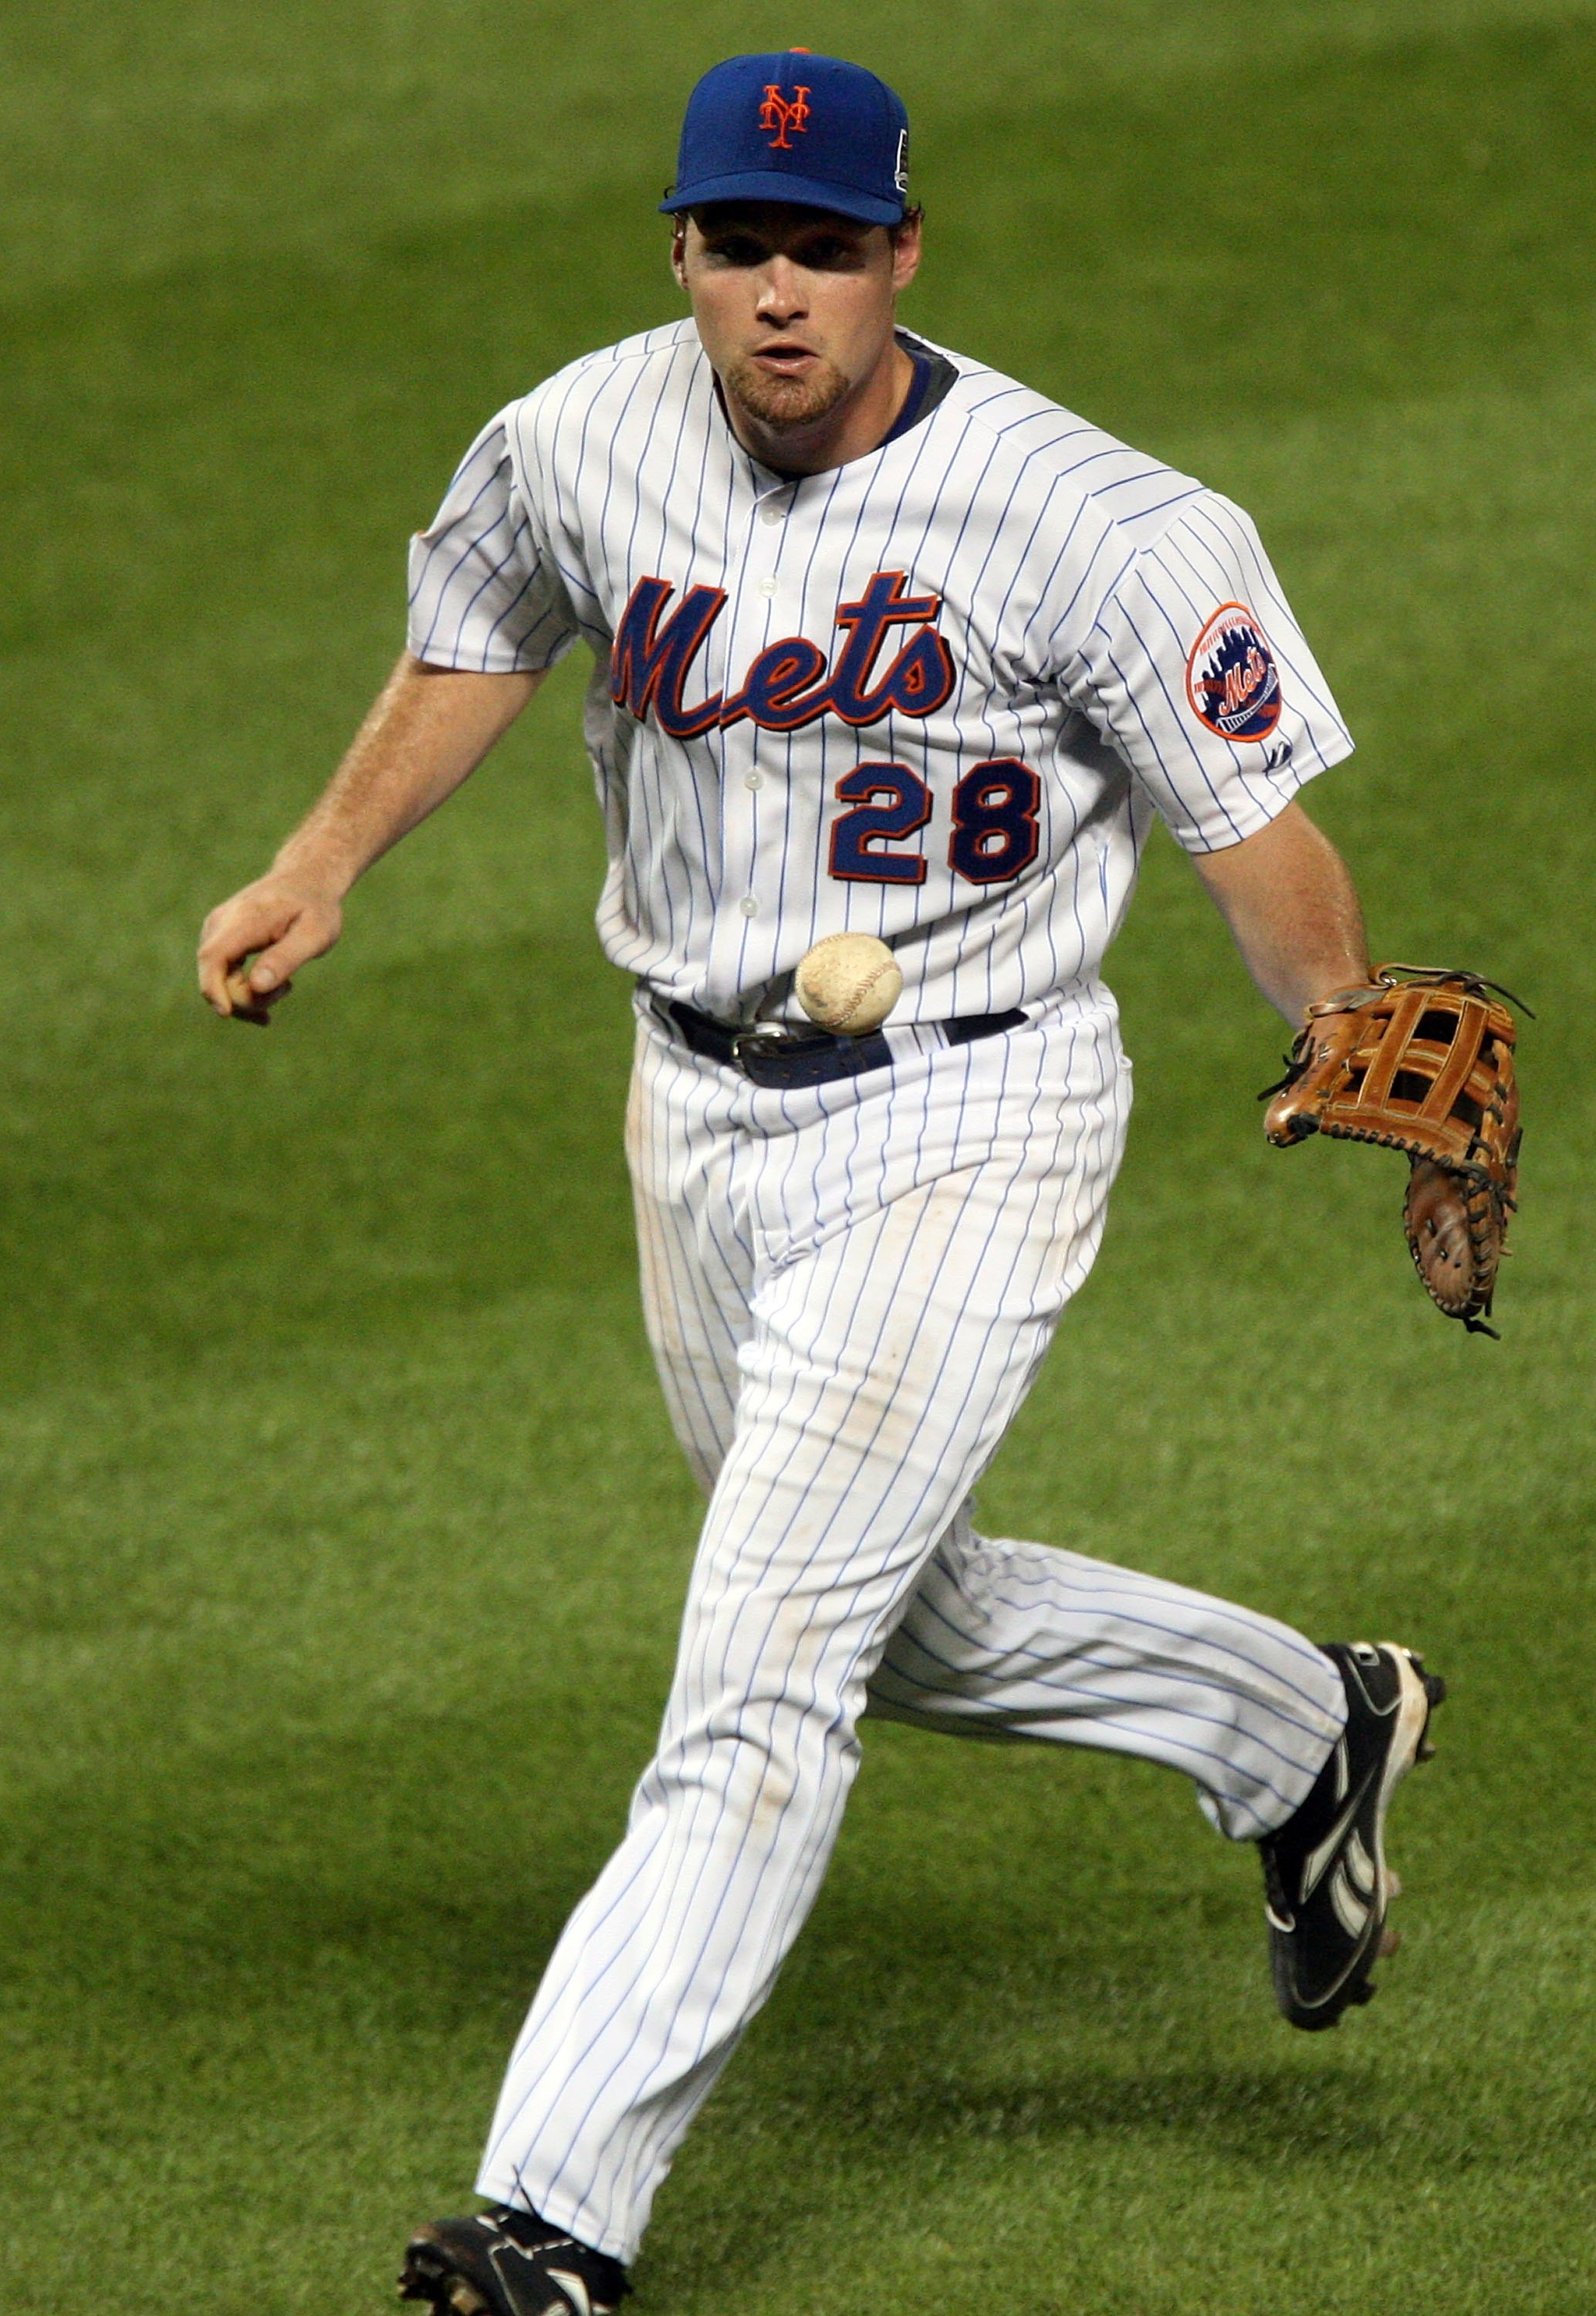 NEW YORK - AUGUST 19:  Daniel Murphy #28 of the New York Mets fields the ball against the Atlanta Braves on August 19, 2009 at Citi Field in the Flushing neighborhood of the Queens borough of New York City.  (Photo by Jim McIsaac/Getty Images)